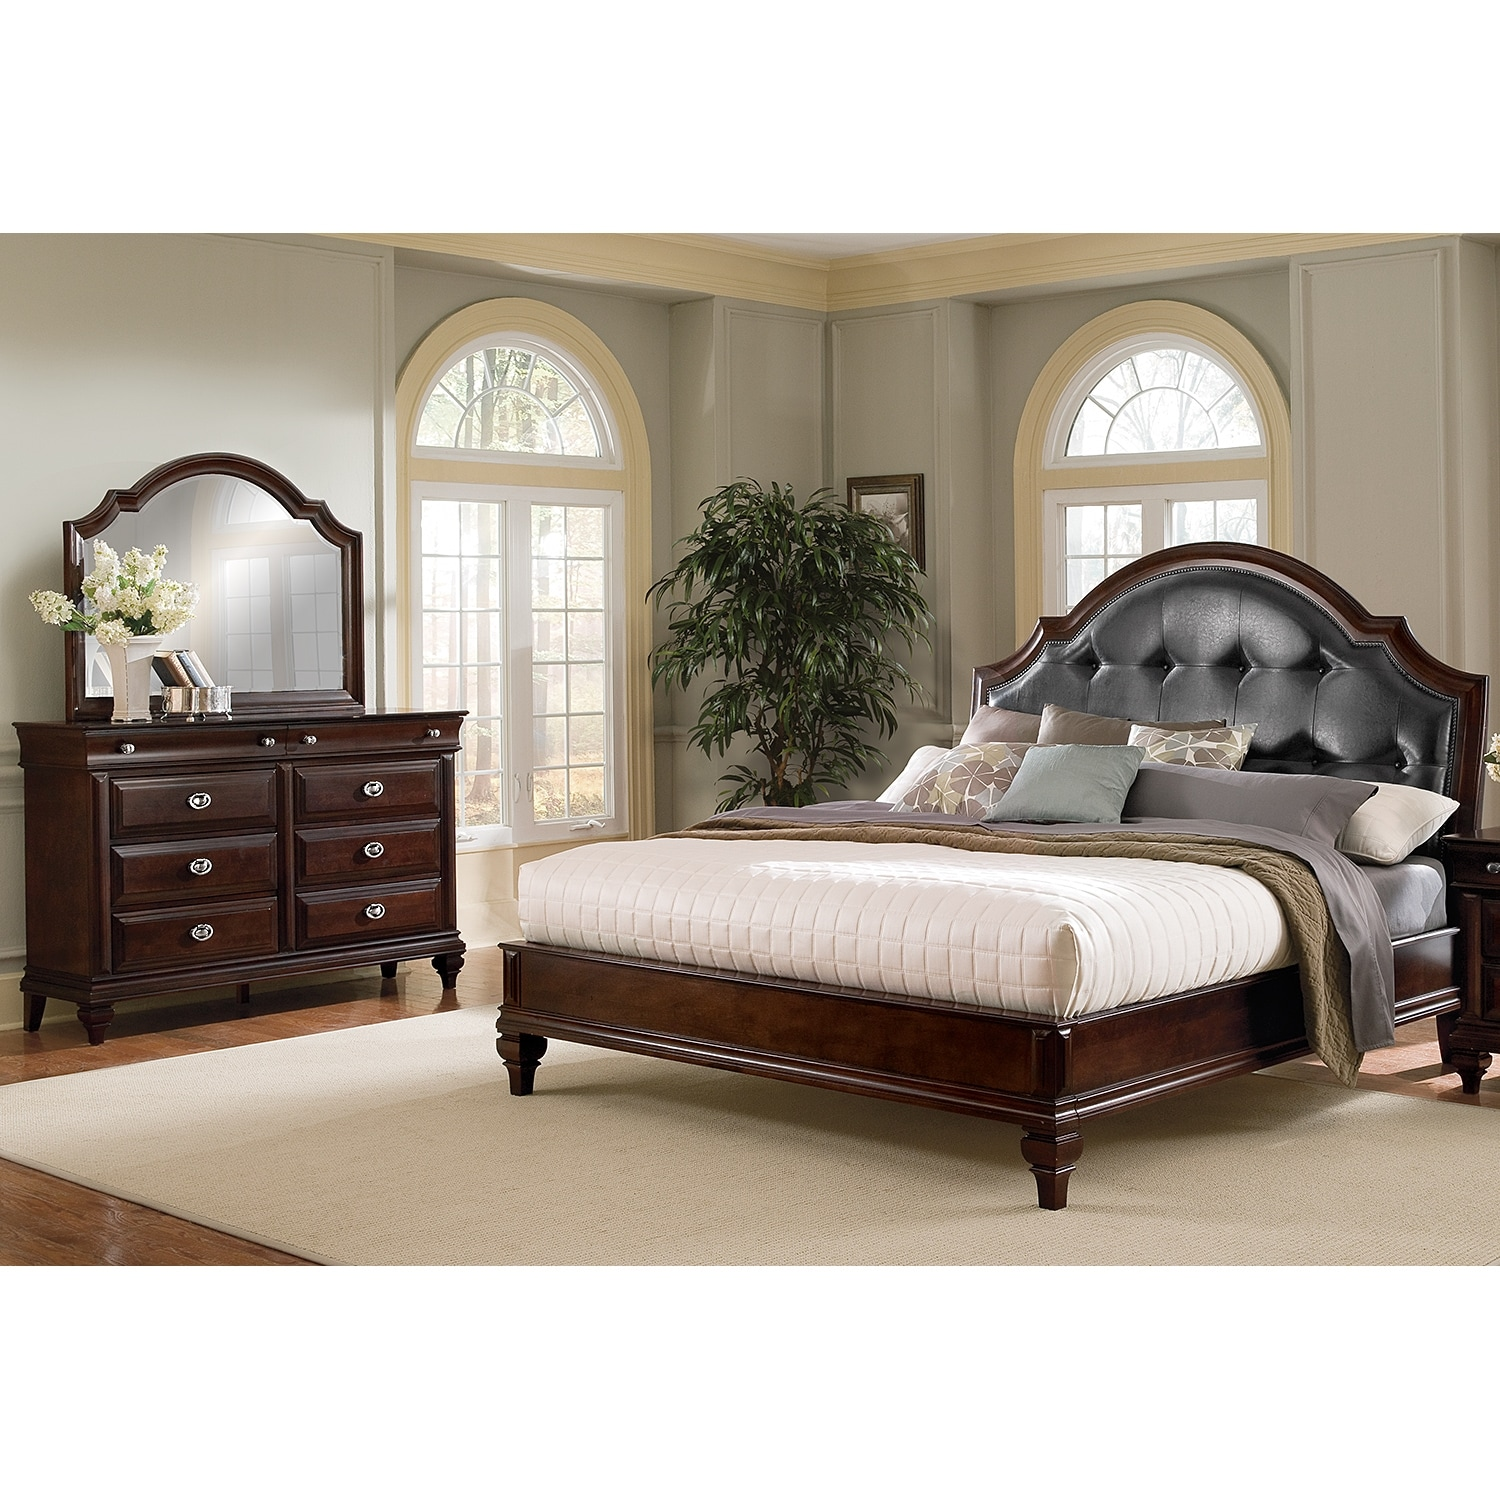 Manhattan 5-Piece King Bedroom Set - Cherry